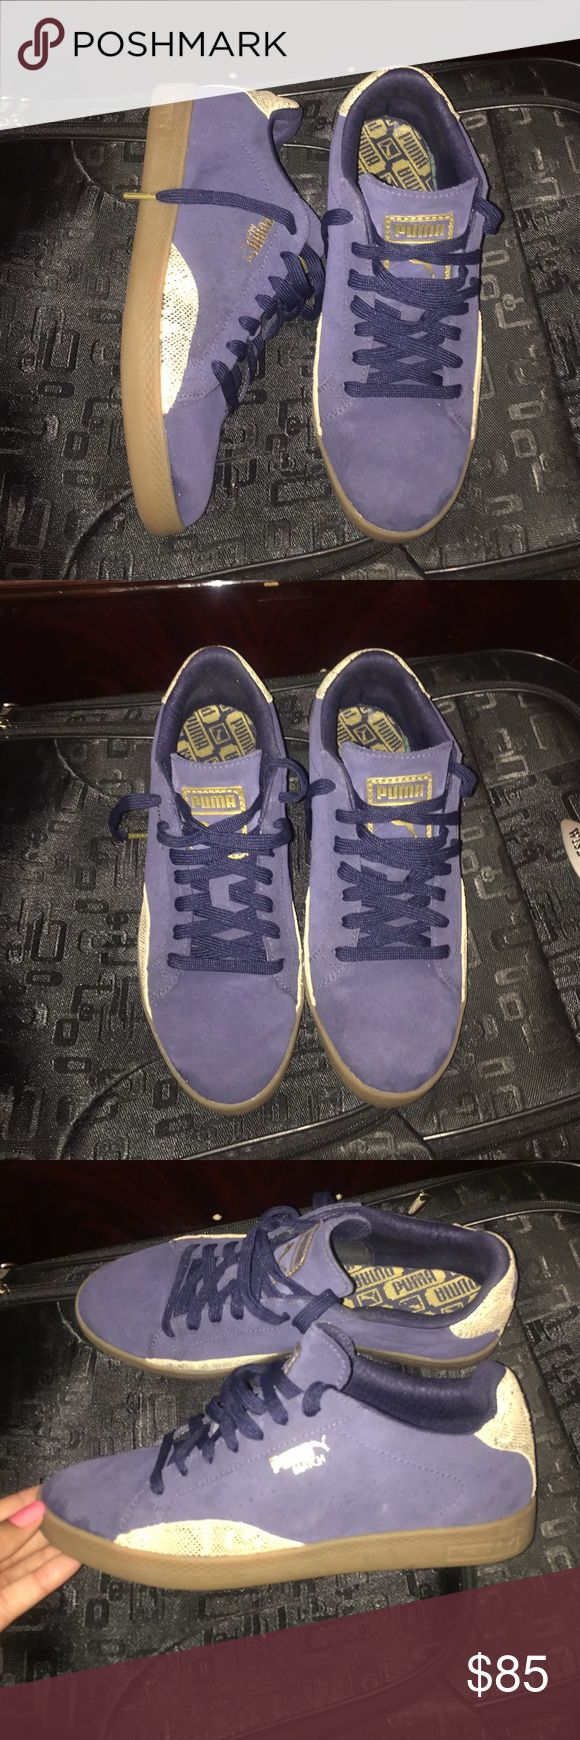 Navy Puma Sneakers New! Only worn a few times. Bottom of shoes are also clean. SIZE 8.5 in womens. NO shoe box included. Puma Shoes Sneakers